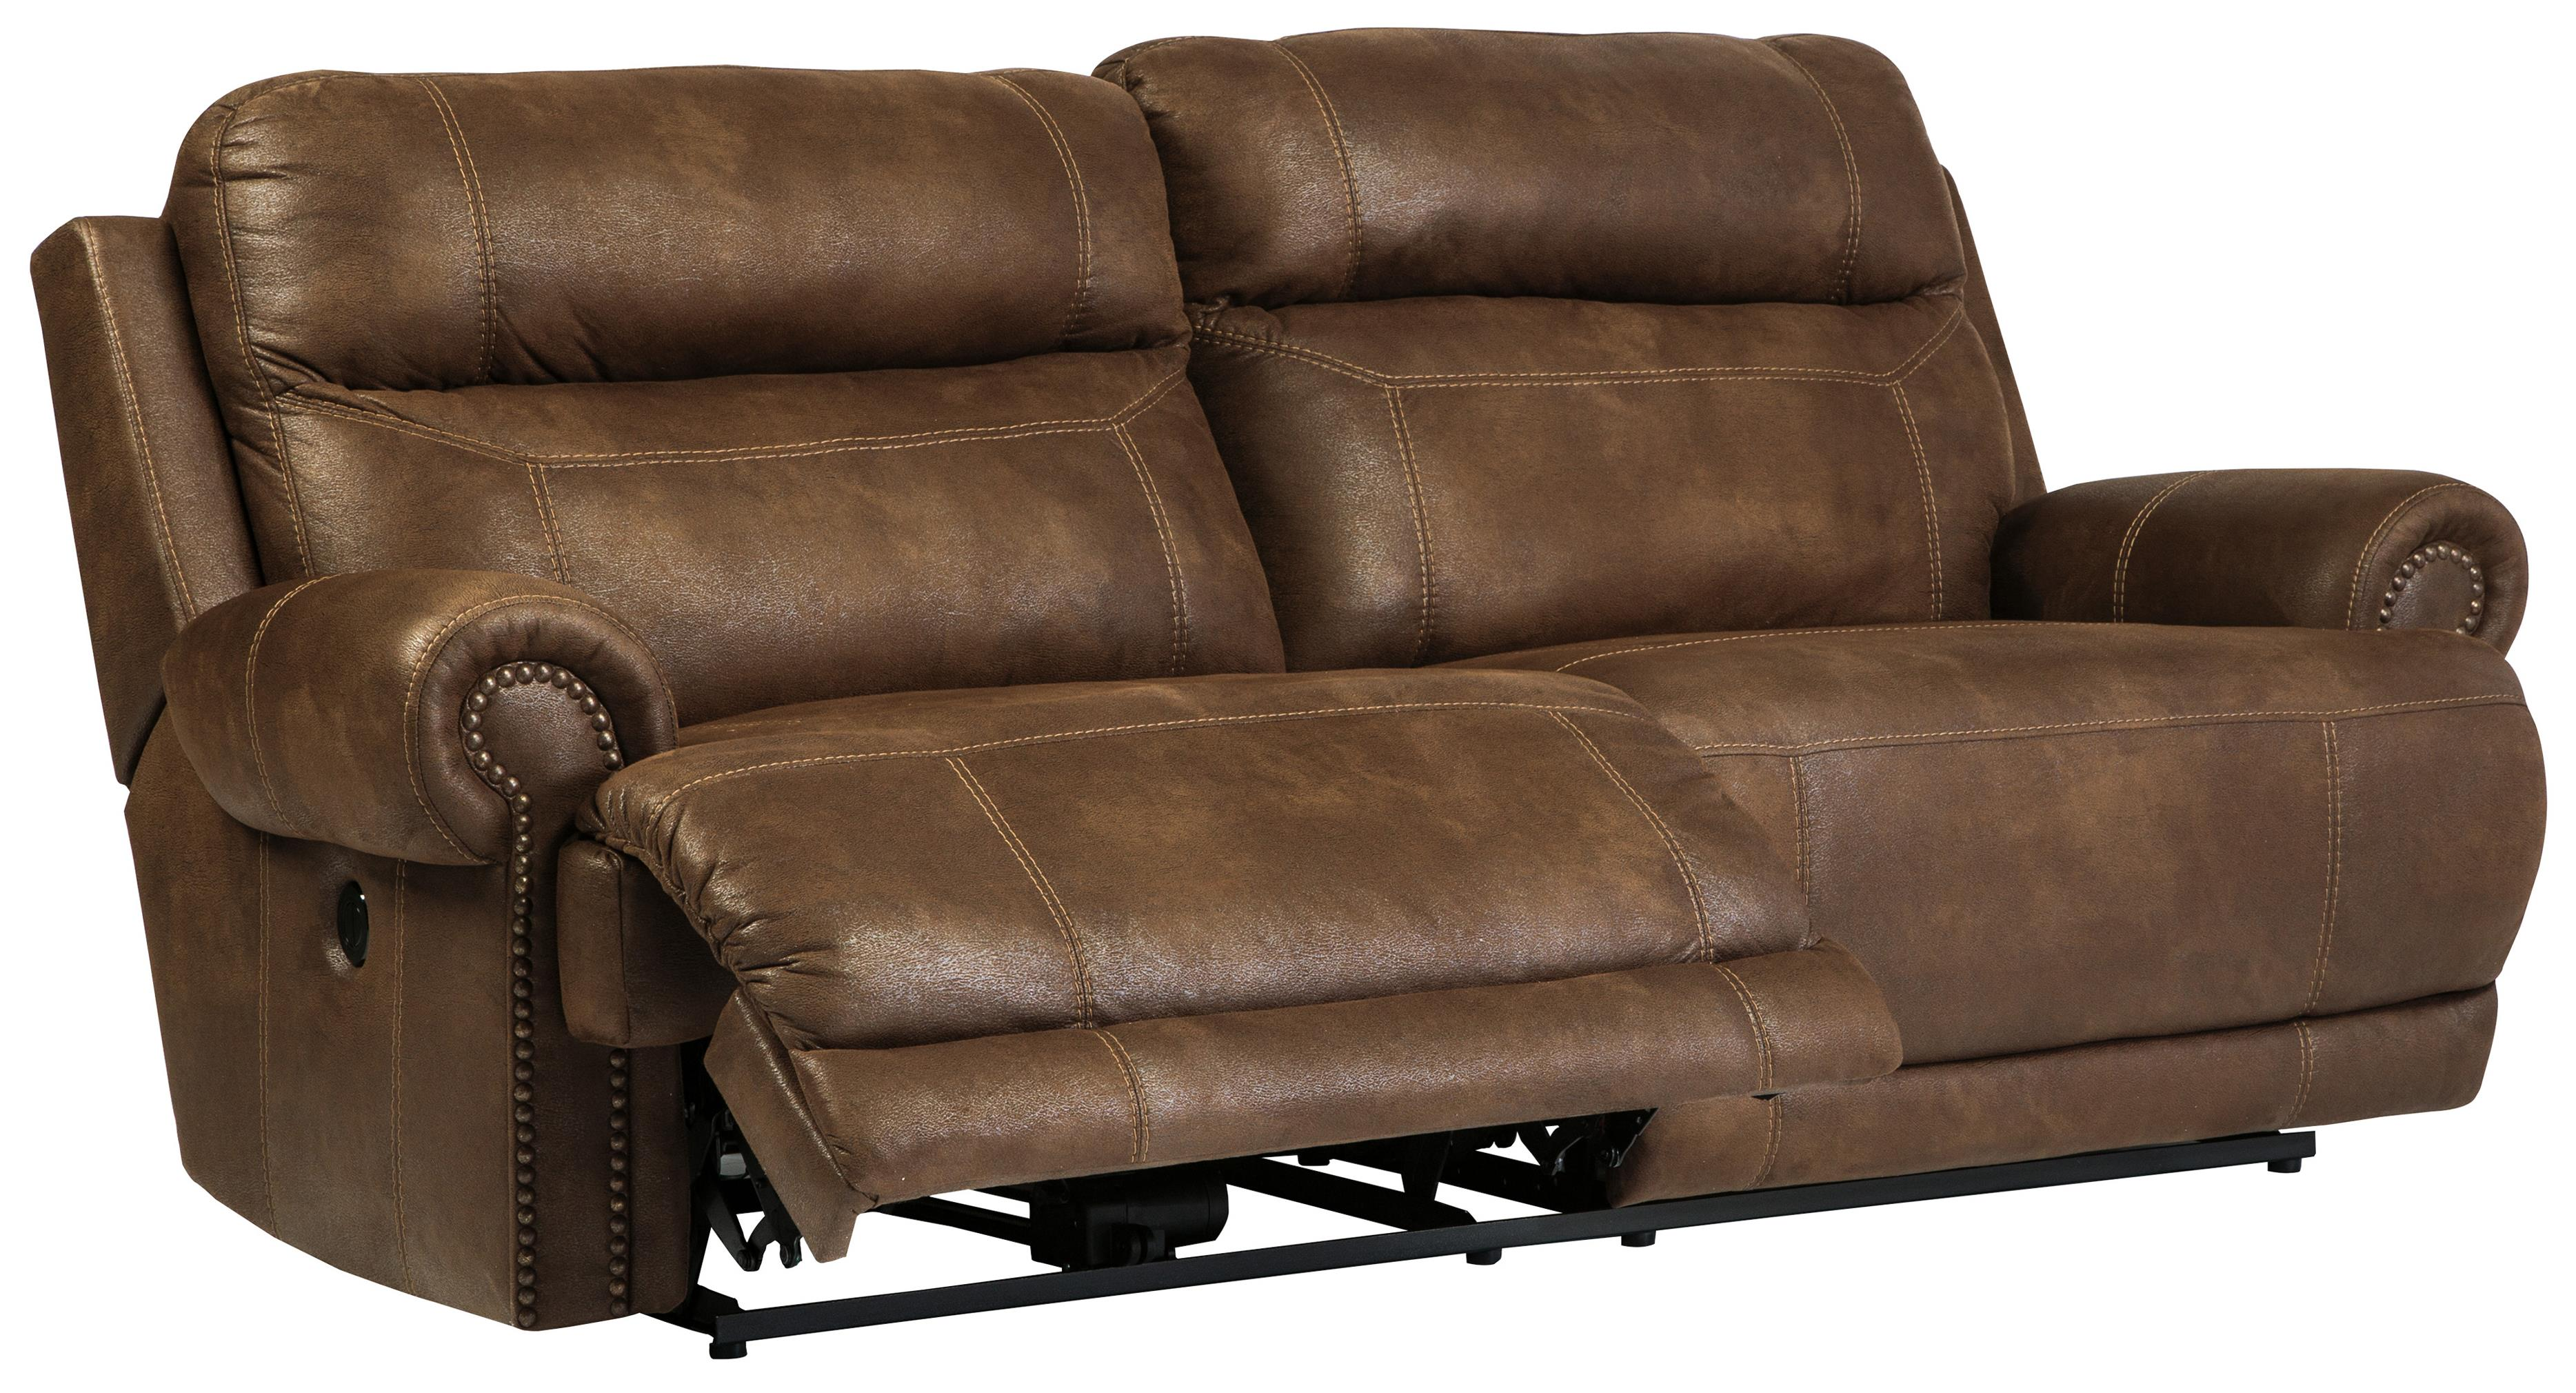 2 Seat Reclining Sofa With Rolled Arms And Nailhead Trim